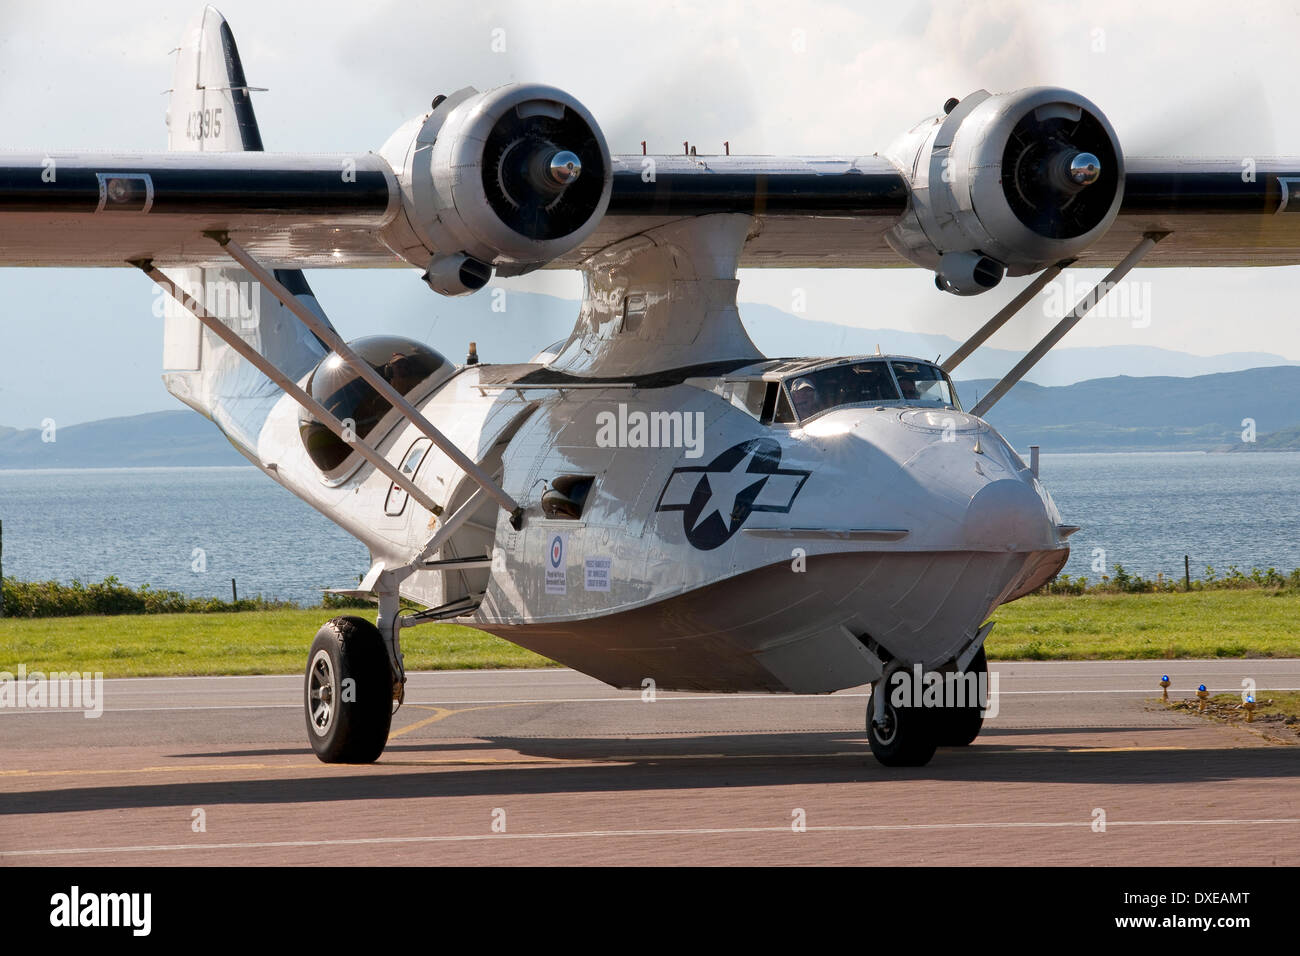 PBY-5A catalina flying boat taxis at Oban airport argyll in 2013 - Stock Image